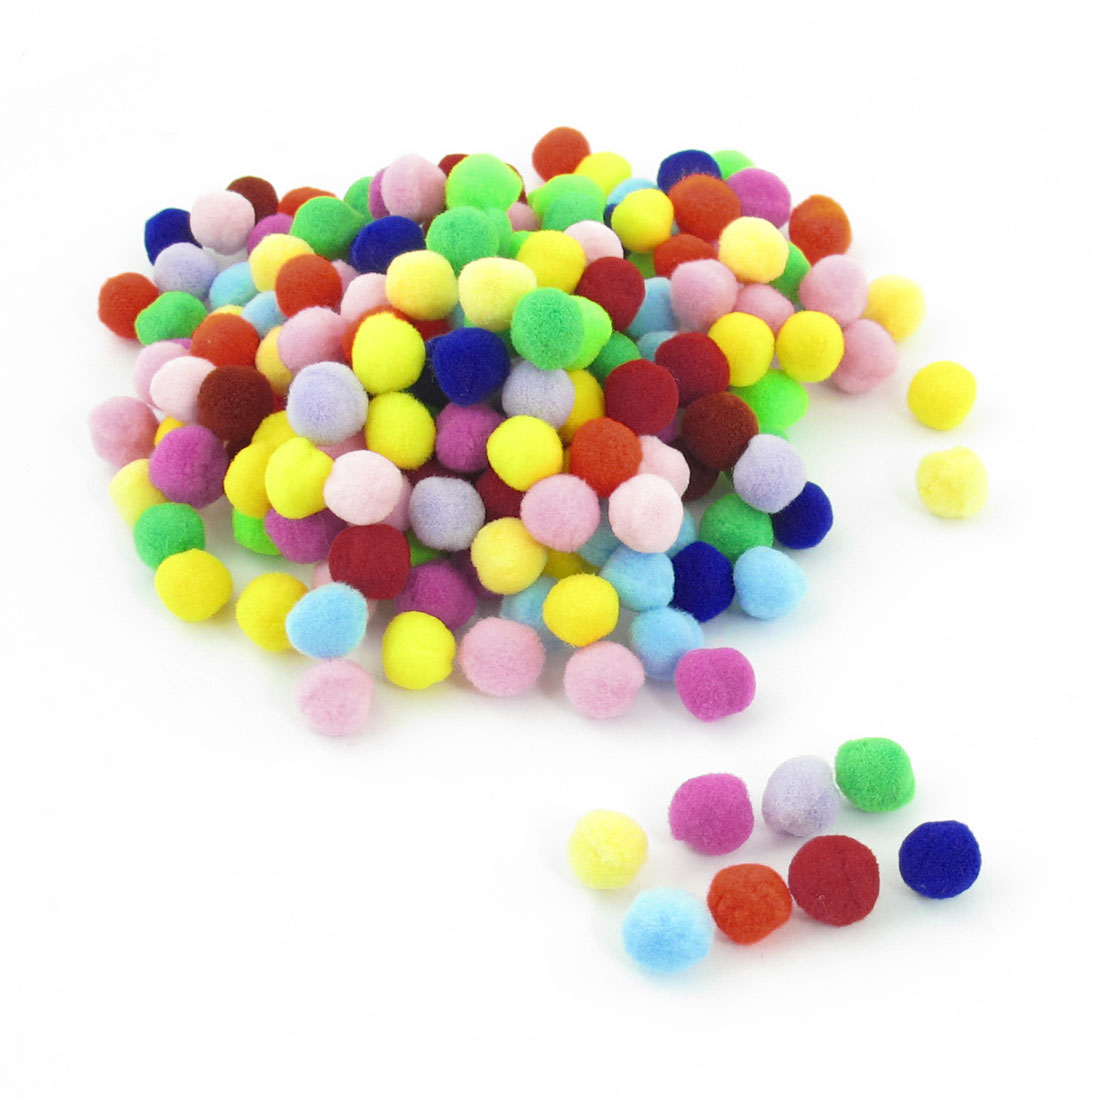 200 Pcs 10mm Dia Plush Colorful Pom Ball Sew On Clothes Trousers Hats Bags